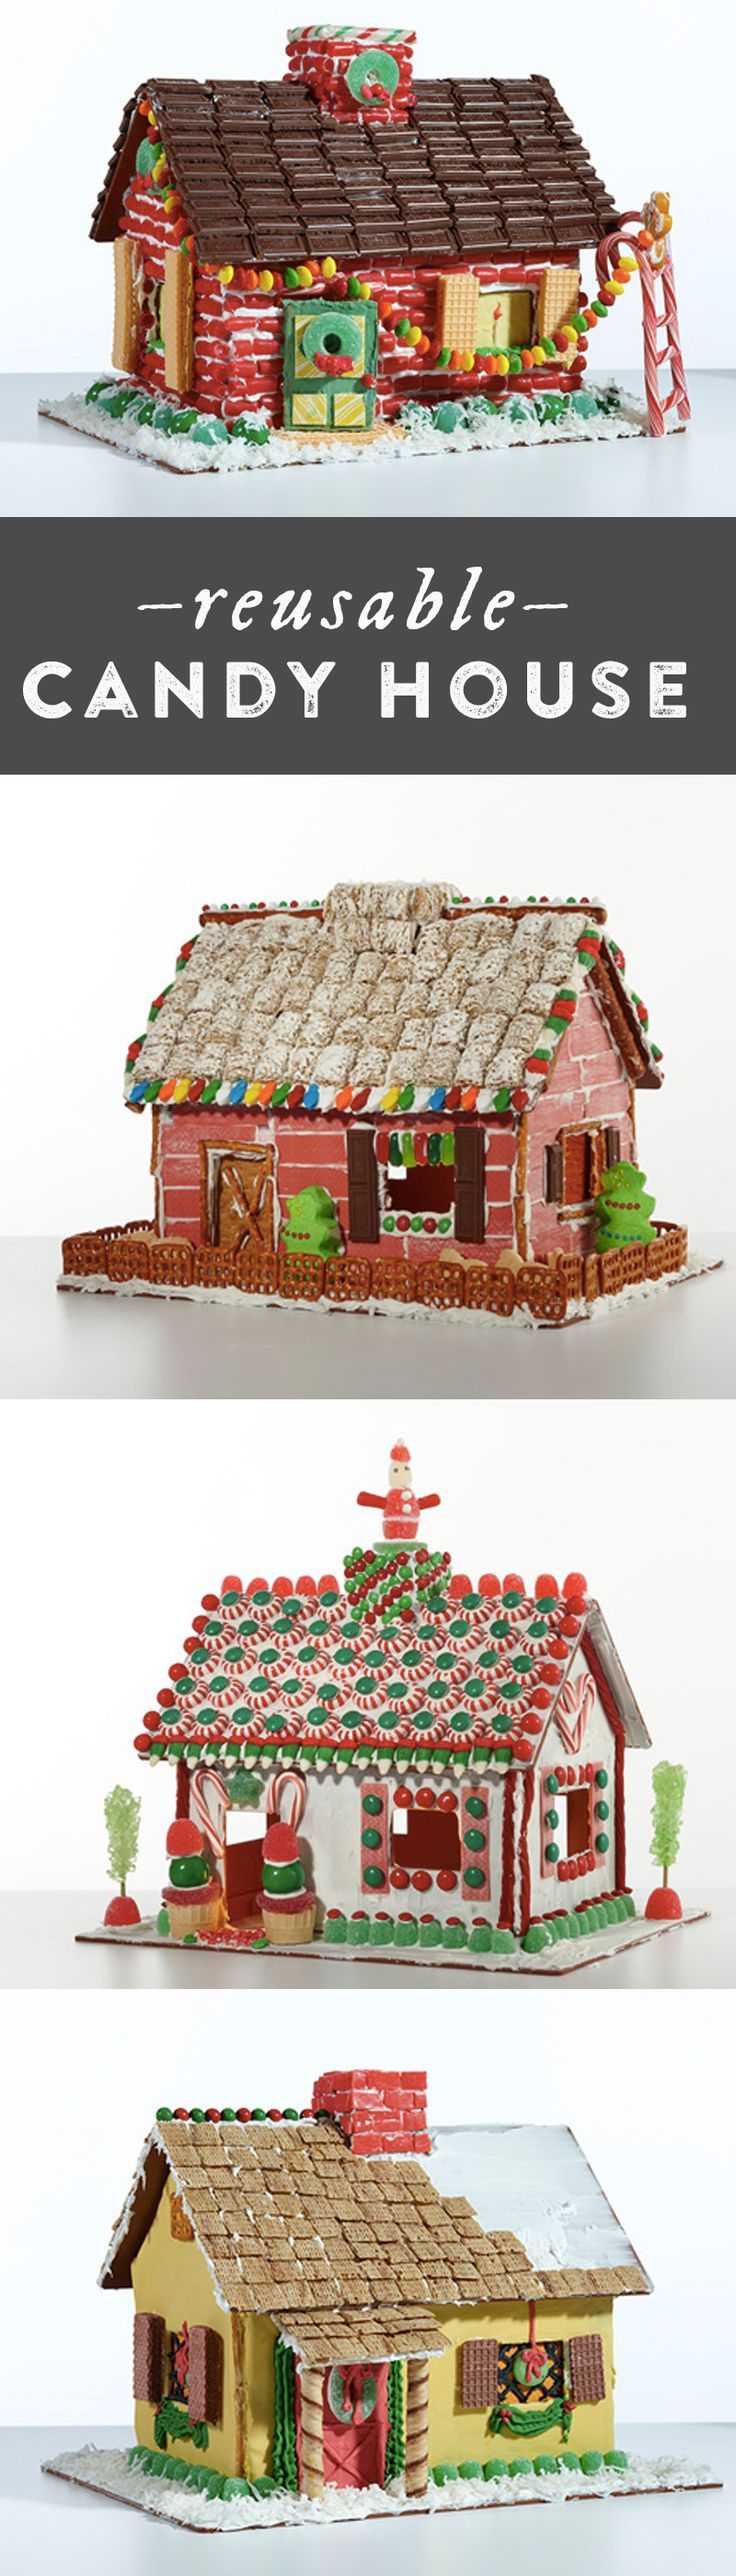 DIY holiday gingerbread houses just got easier. This house is reusable –just wash, and redecorate.